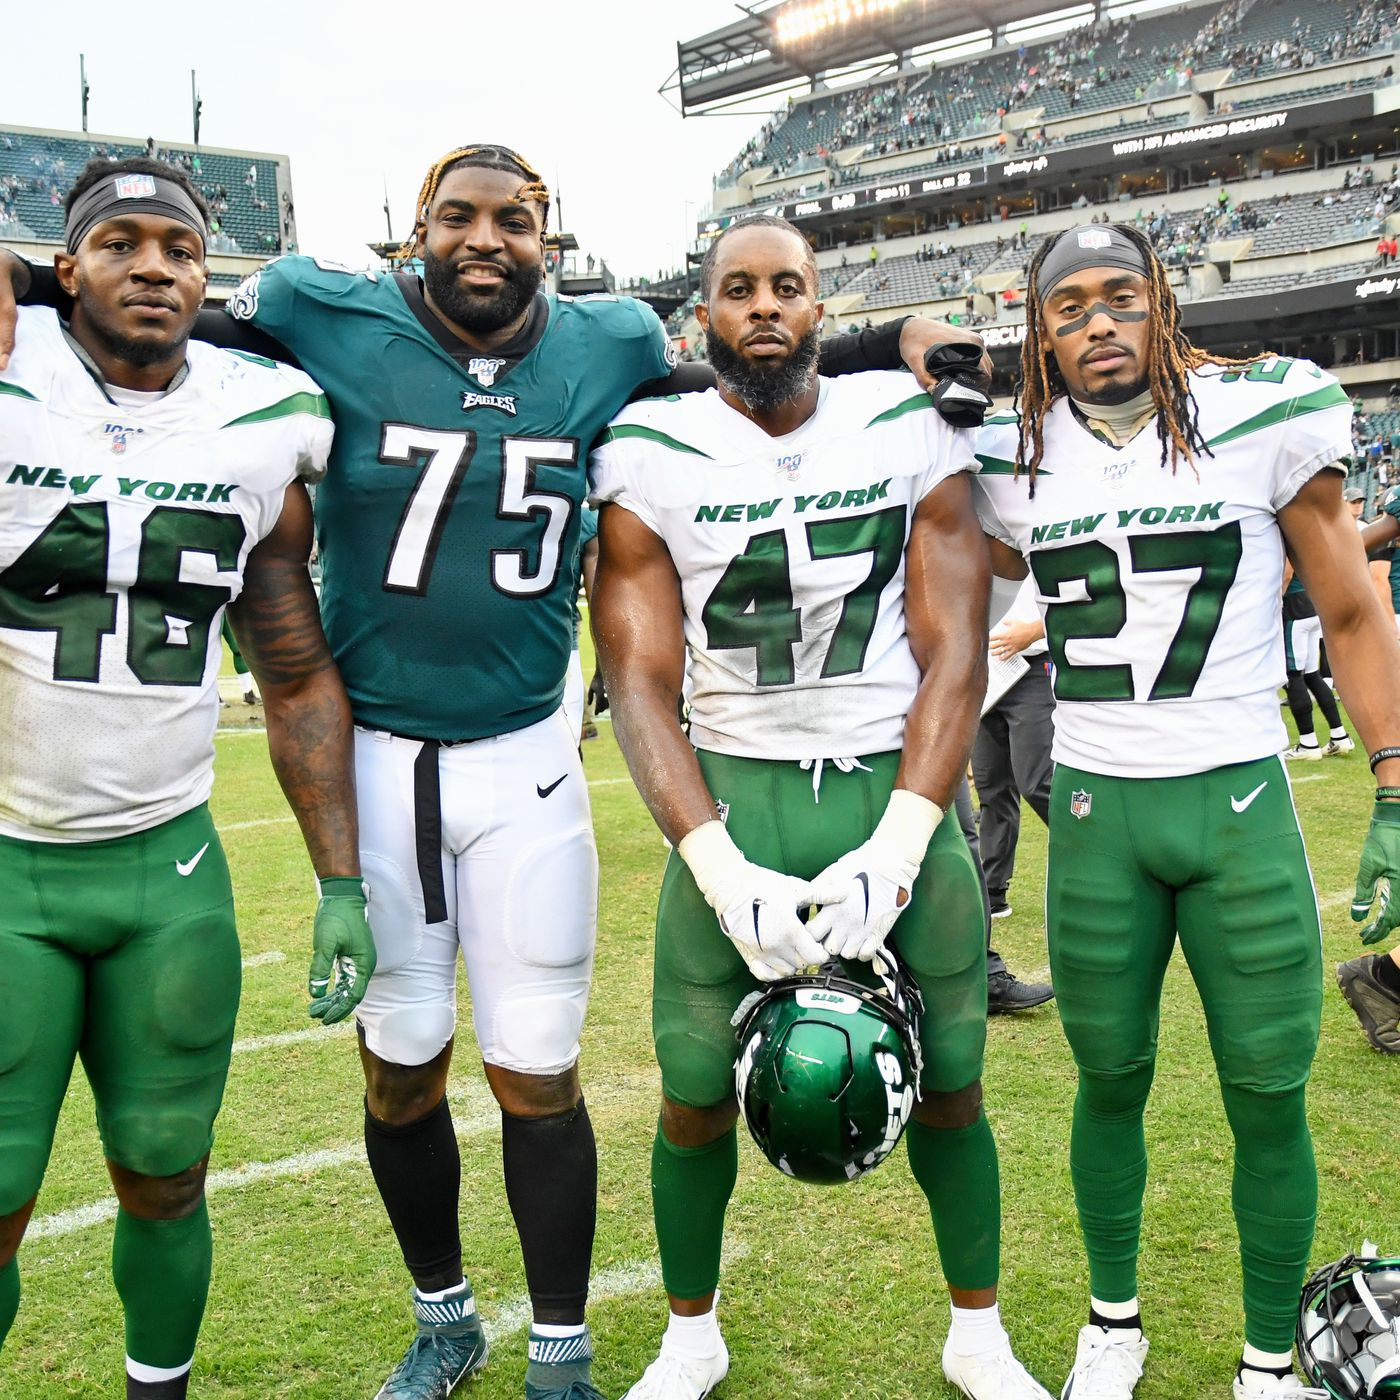 Vinny Curry, Jets agree to contract - Bleeding Green Nation